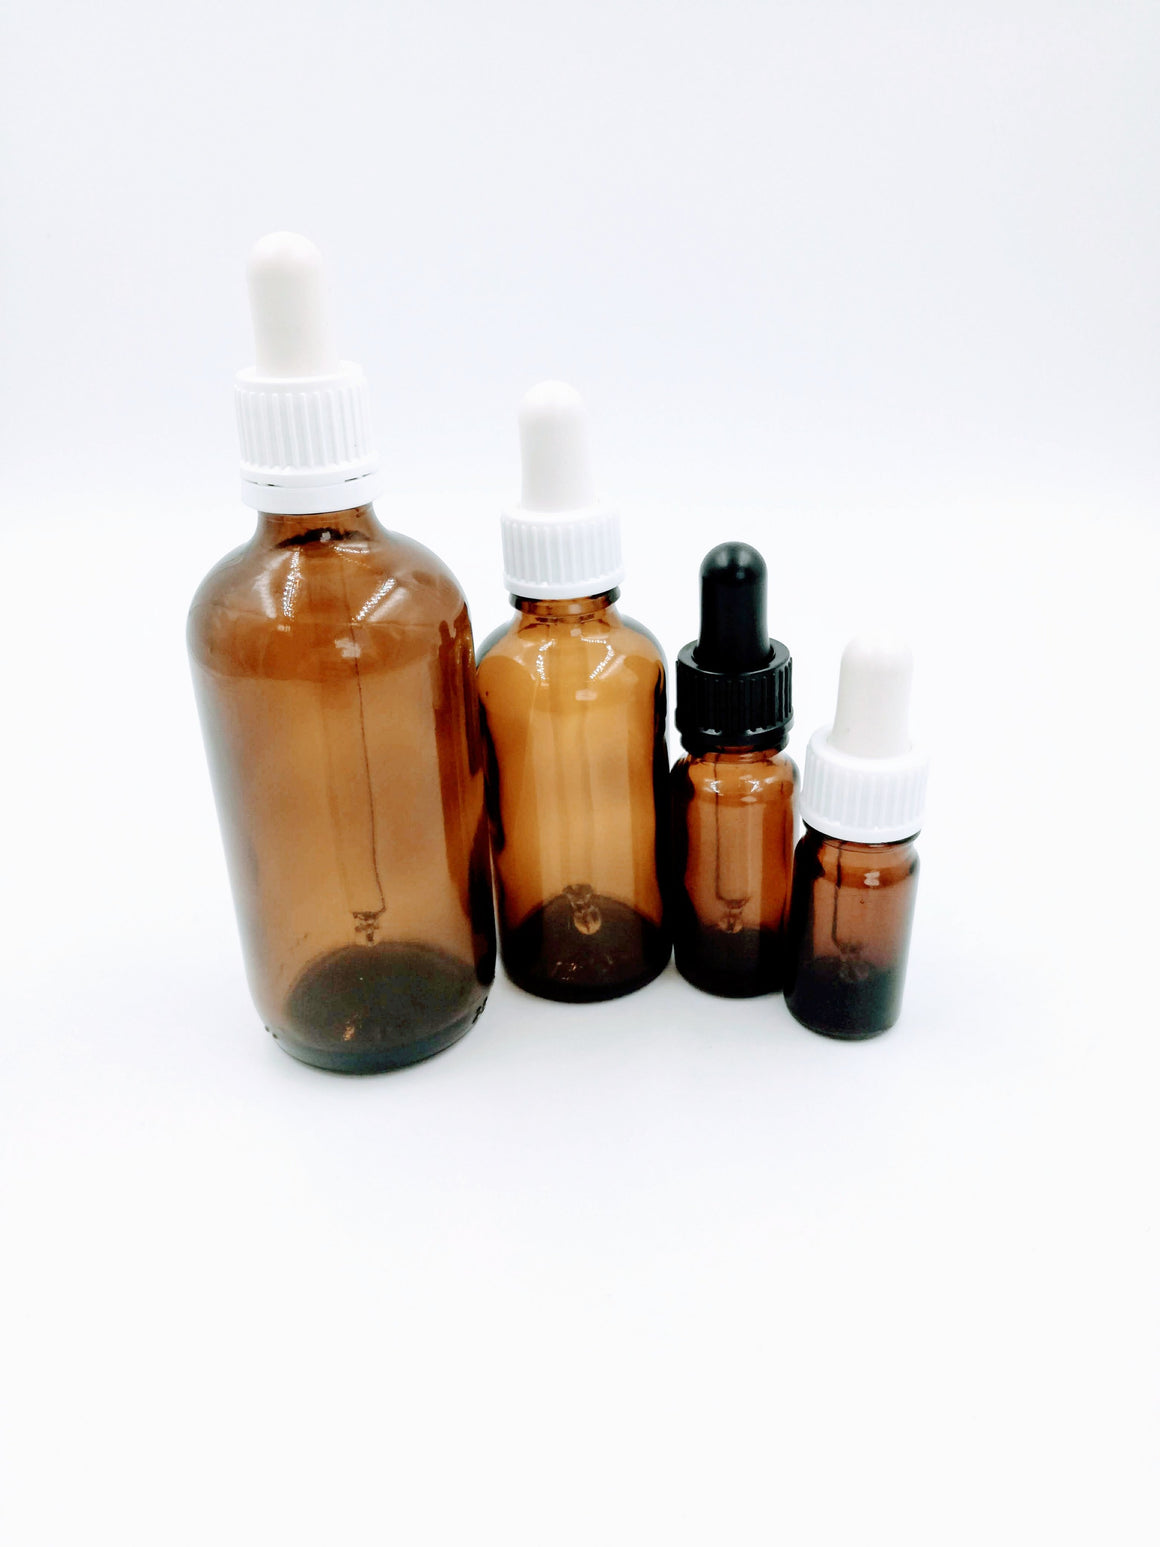 Amber Glass Bottles with Dropper - Petal and Stem - Aromatherapy - Aromaterapia - oleos essencais